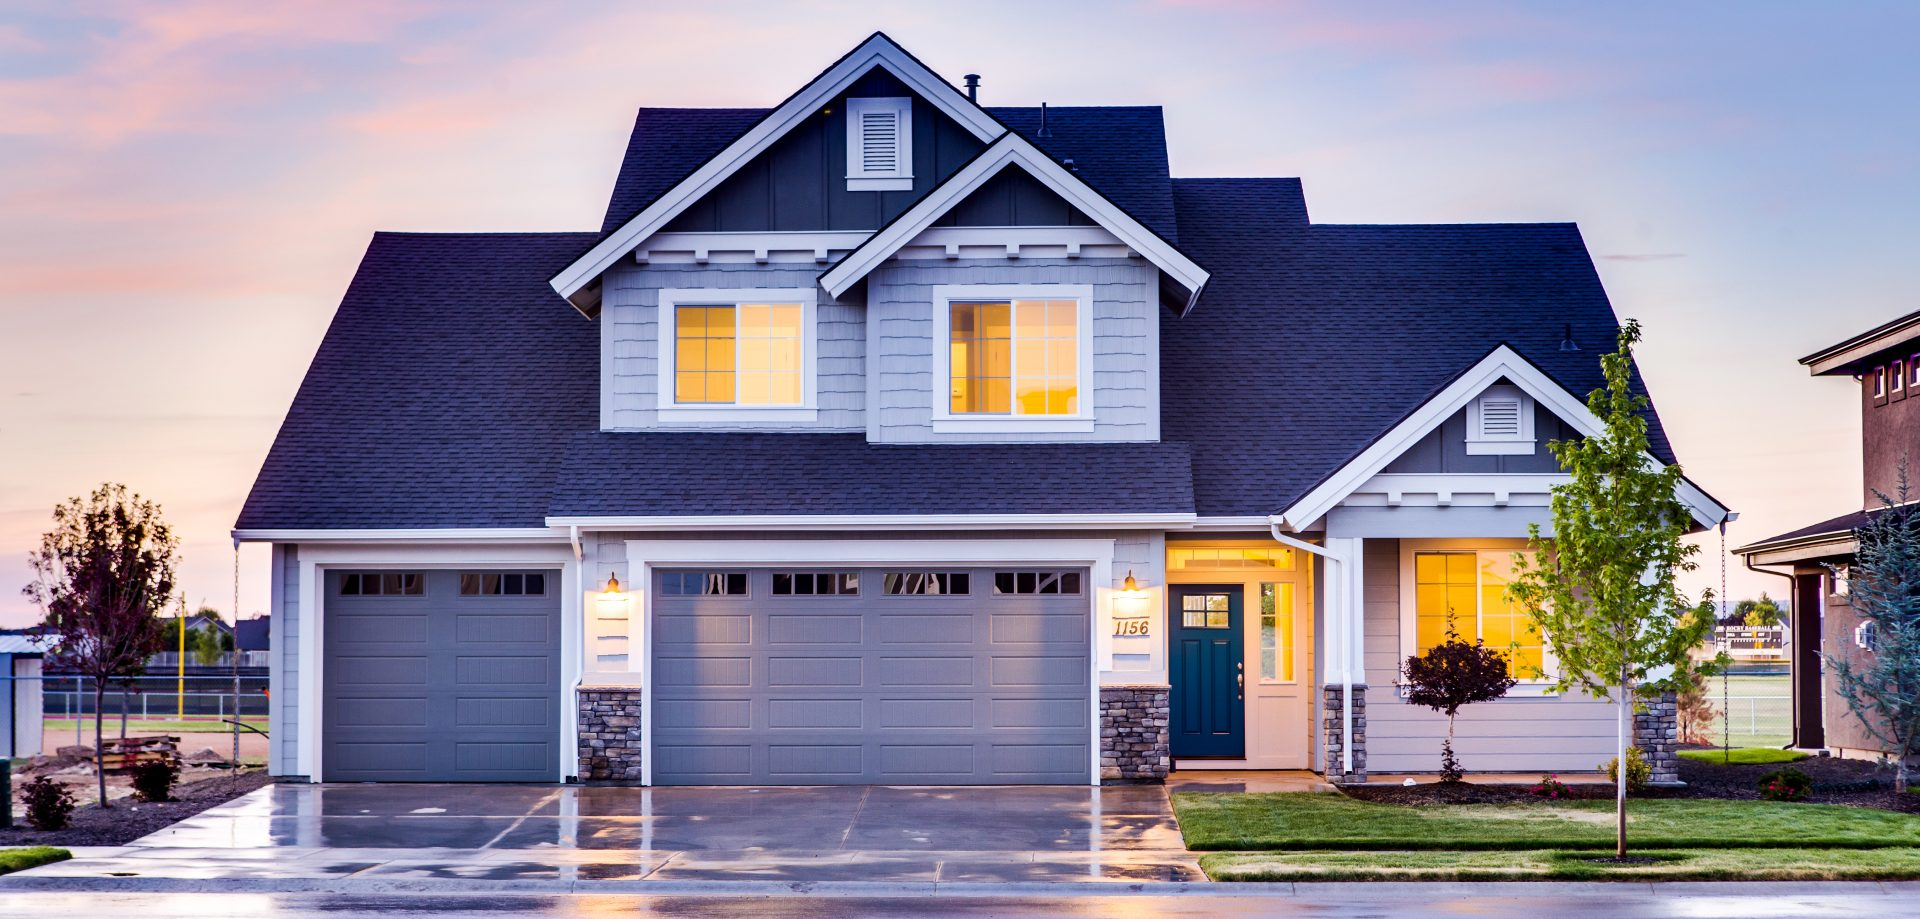 Can A Landlord Be Held Liable For A Personal Injury (In Florida)?